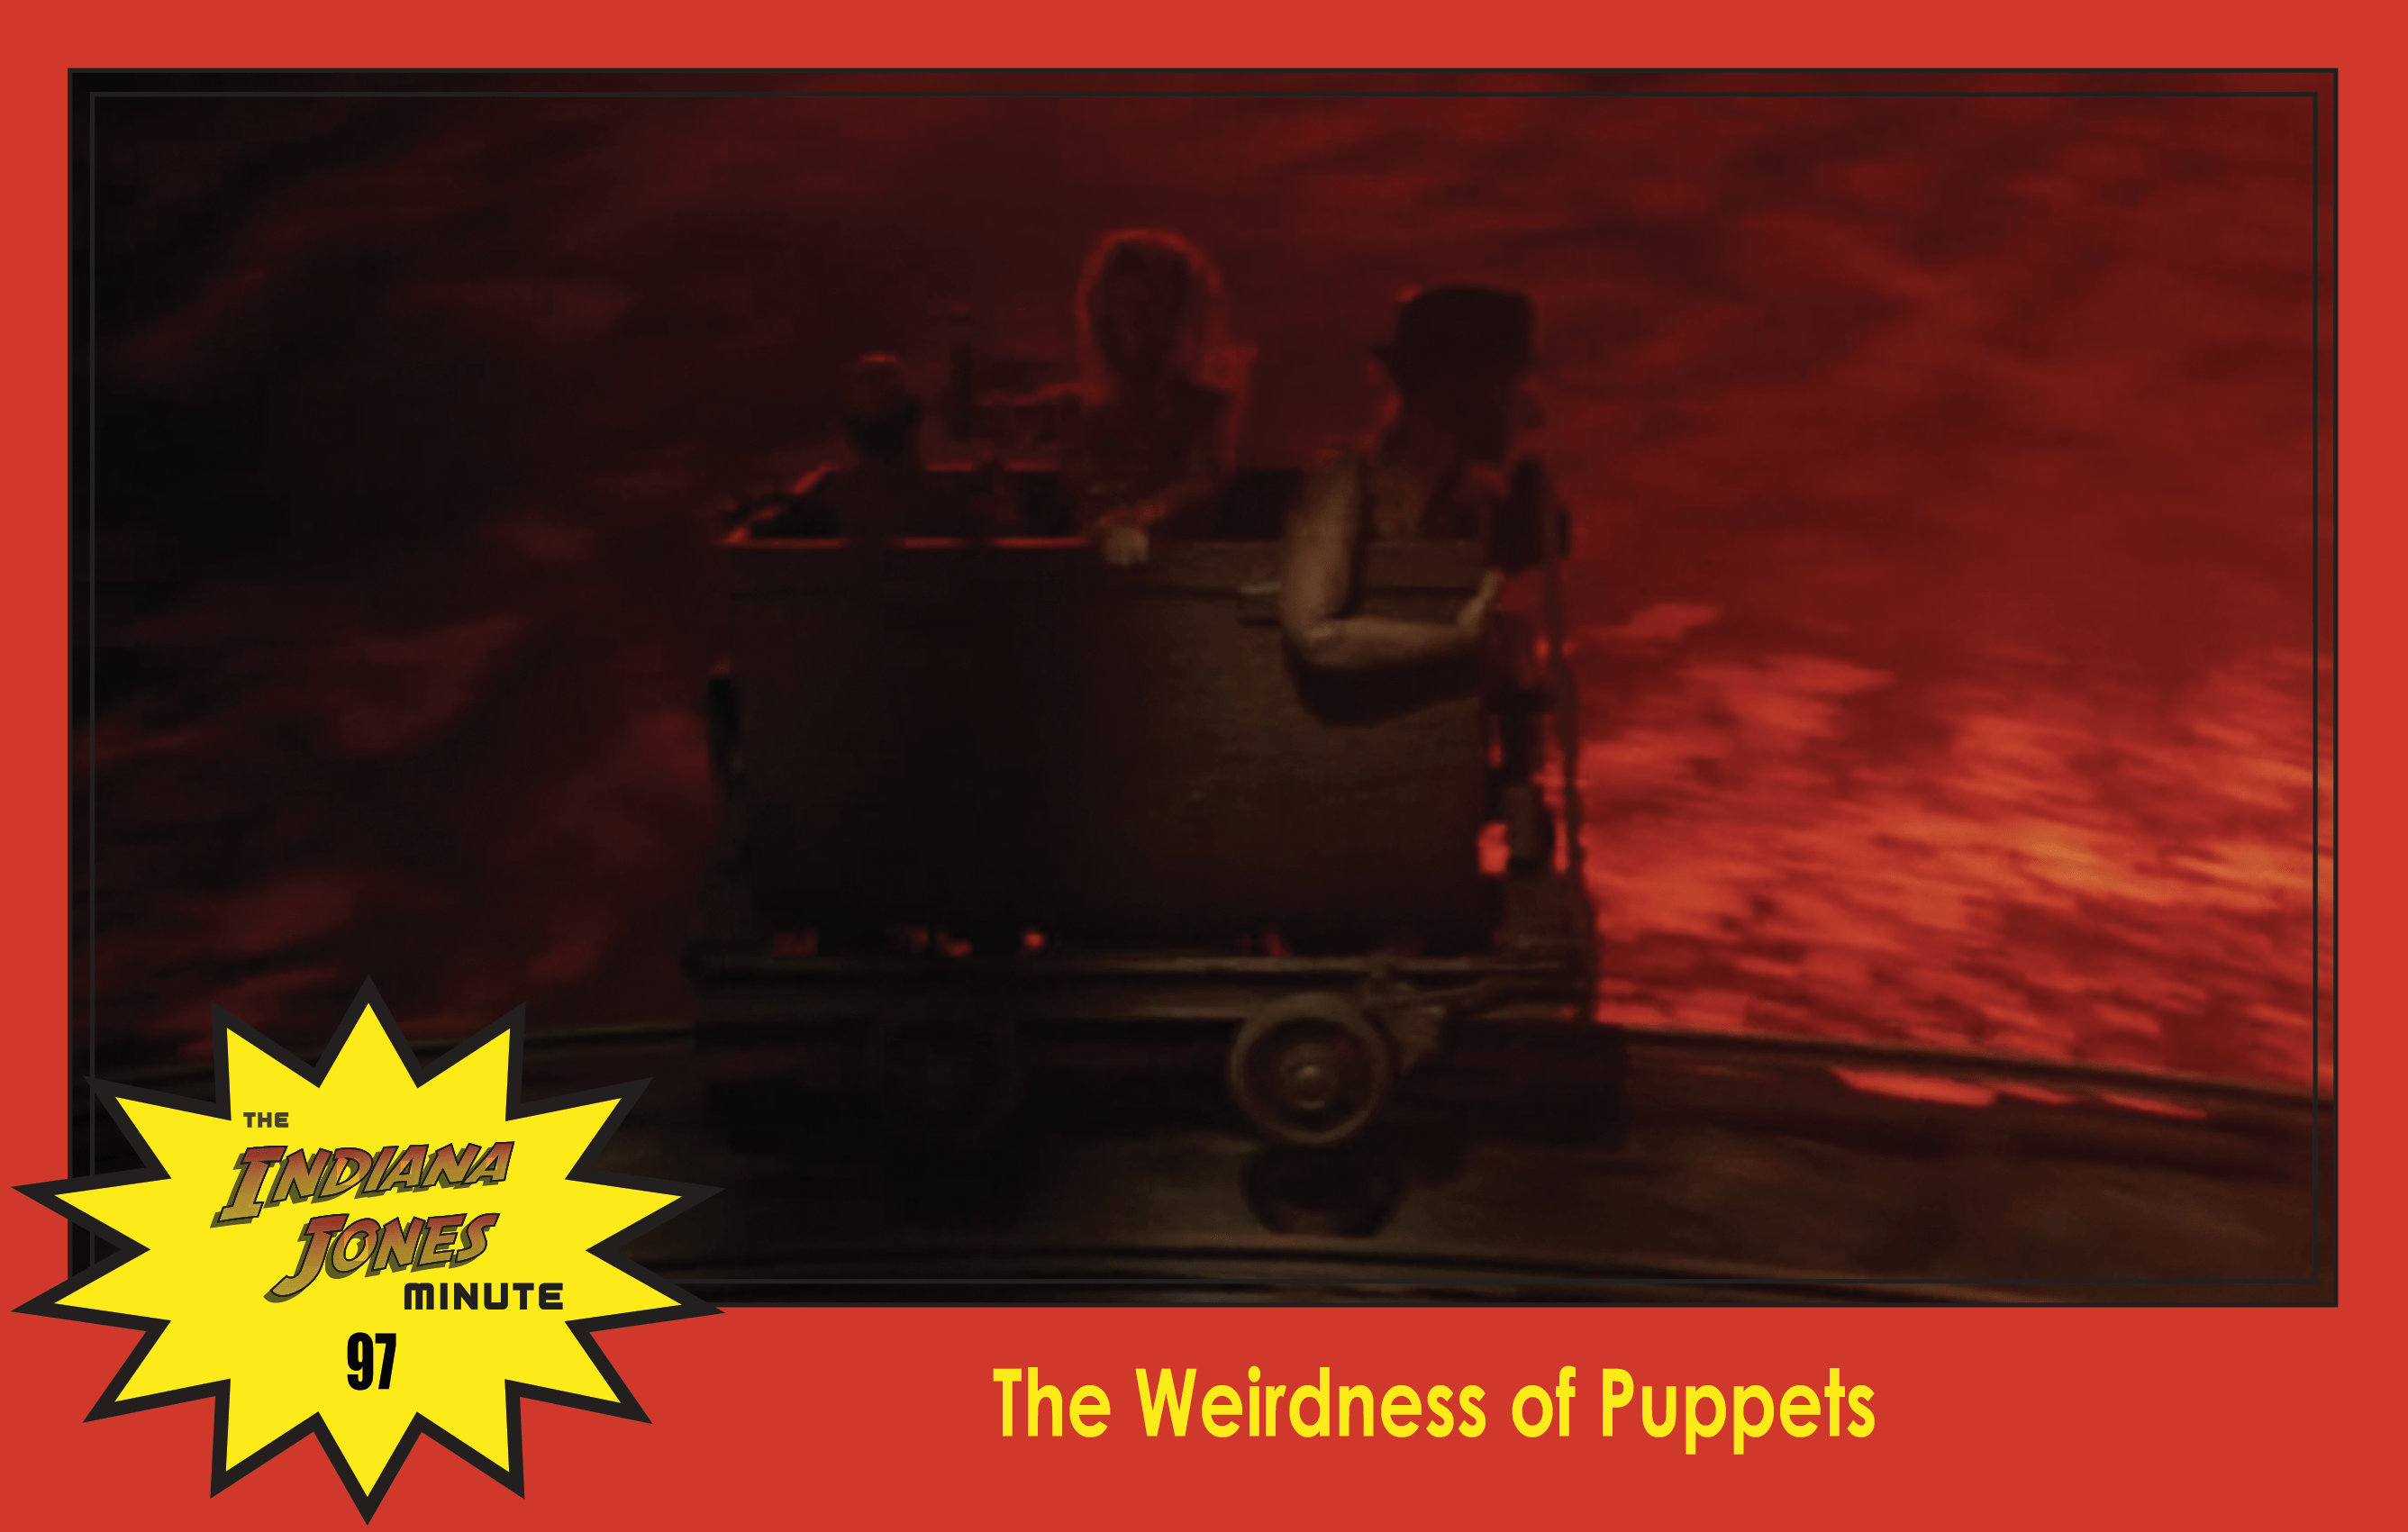 Temple of Doom Minute 97: The Weirdness of Puppets